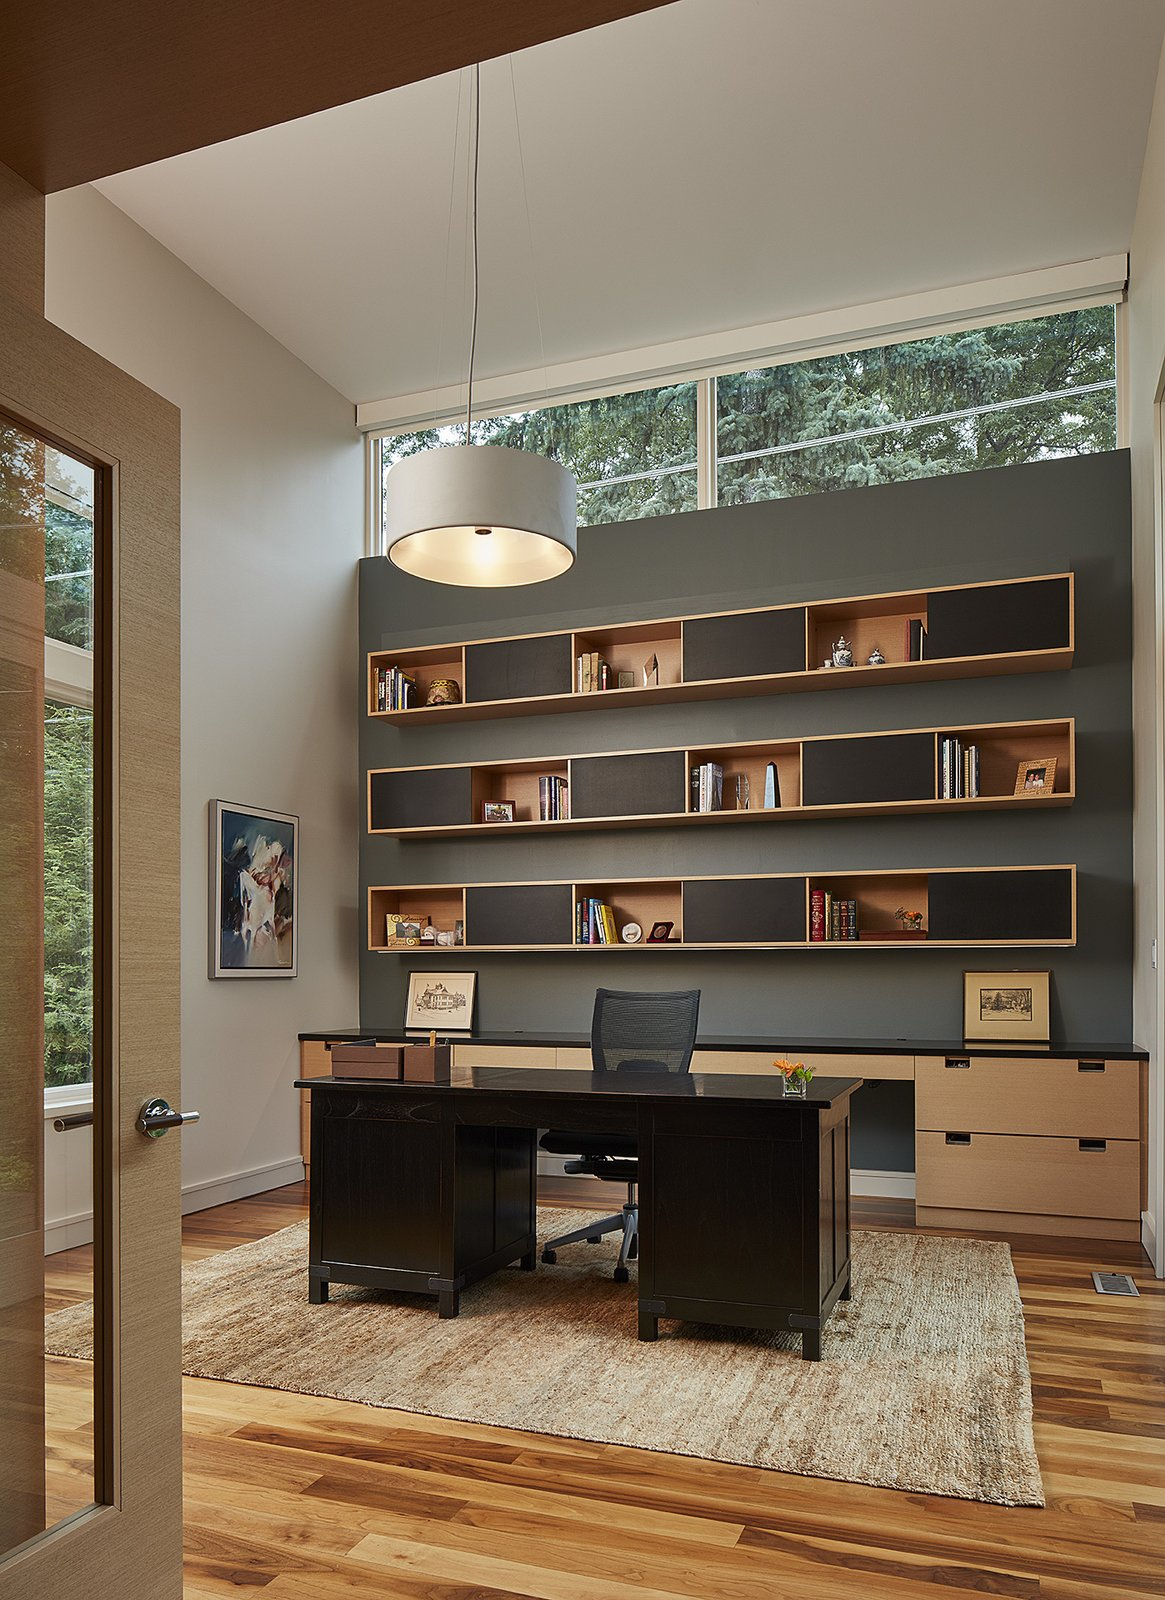 Office, Study Room Type, Chair, Medium Hardwood Floor, and Desk Jim's office is removed from family areas.  Photo 7 of 8 in An Accessible Home Promotes a Lifetime of Well-Being For the Whole Family